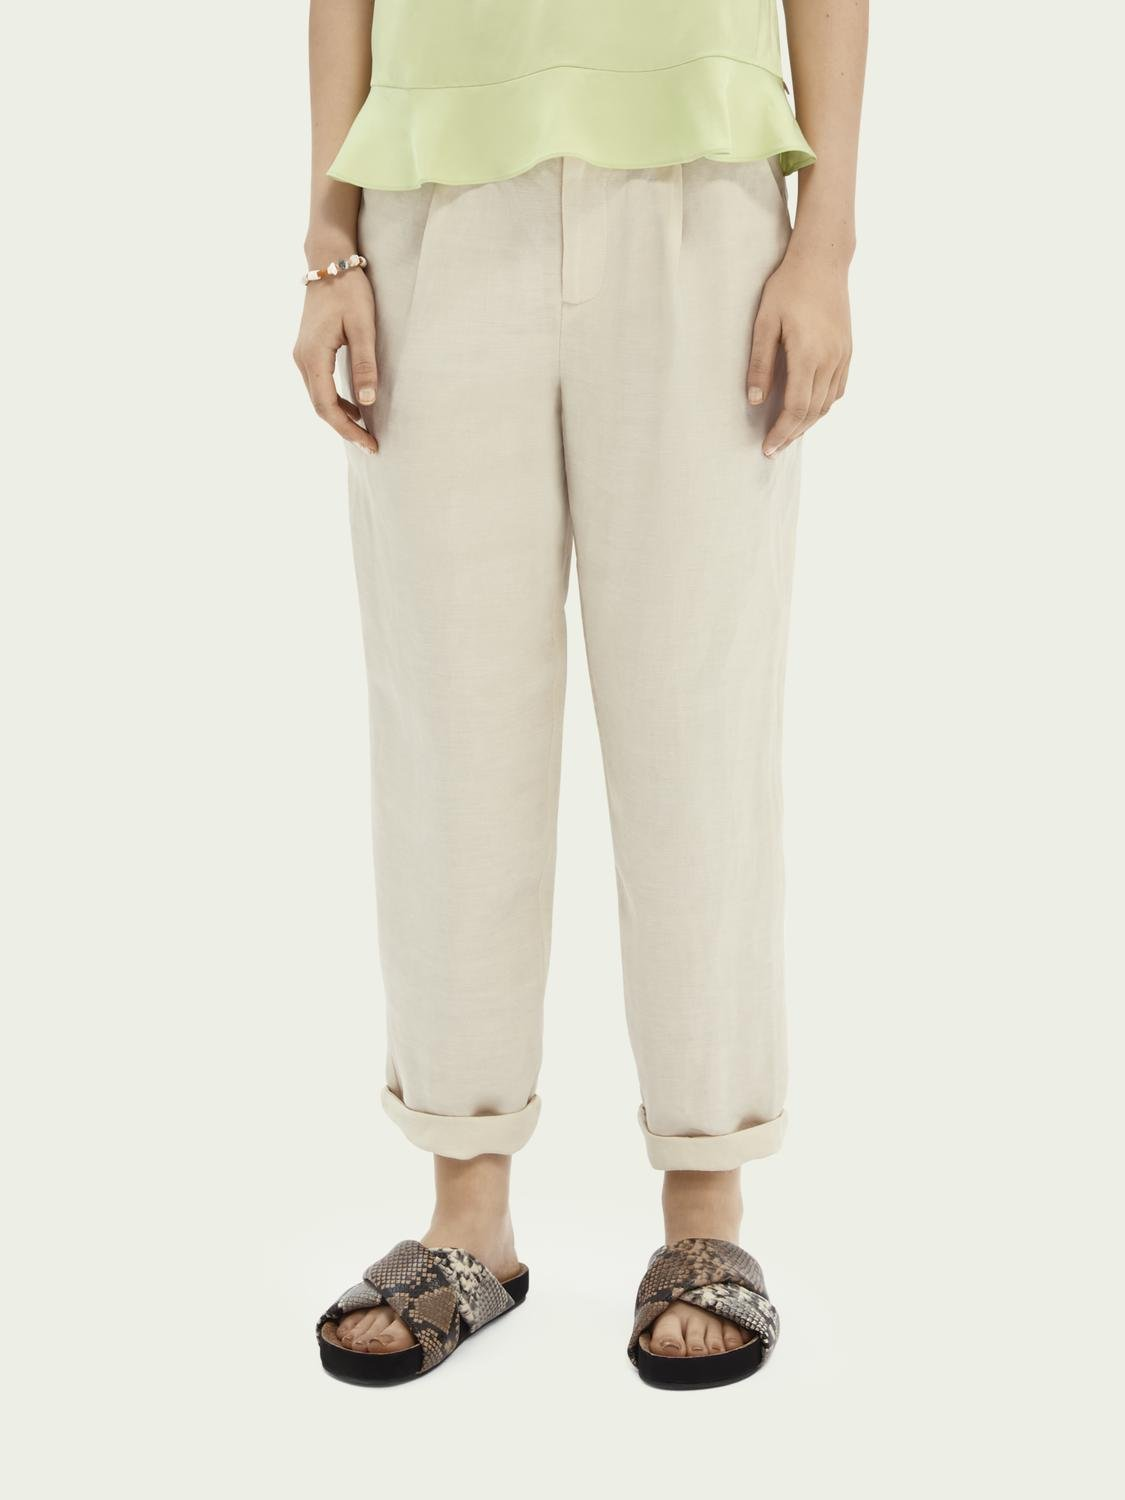 Tailored jogger